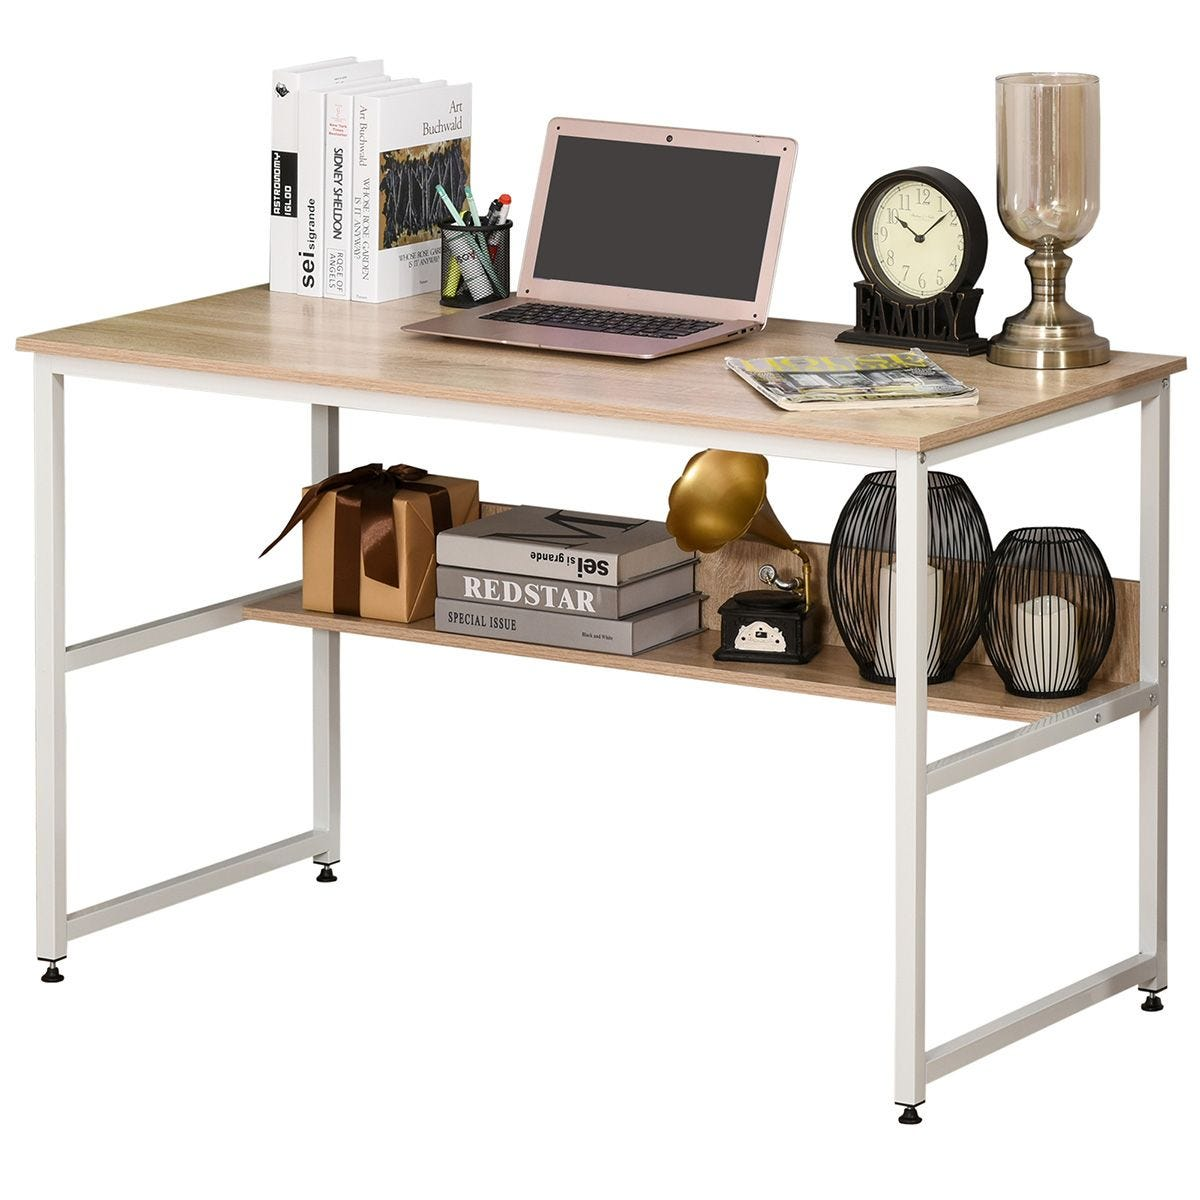 Two Tier Writing Desk For Home Office Metal Frame With Storage Shelf Oak Effect